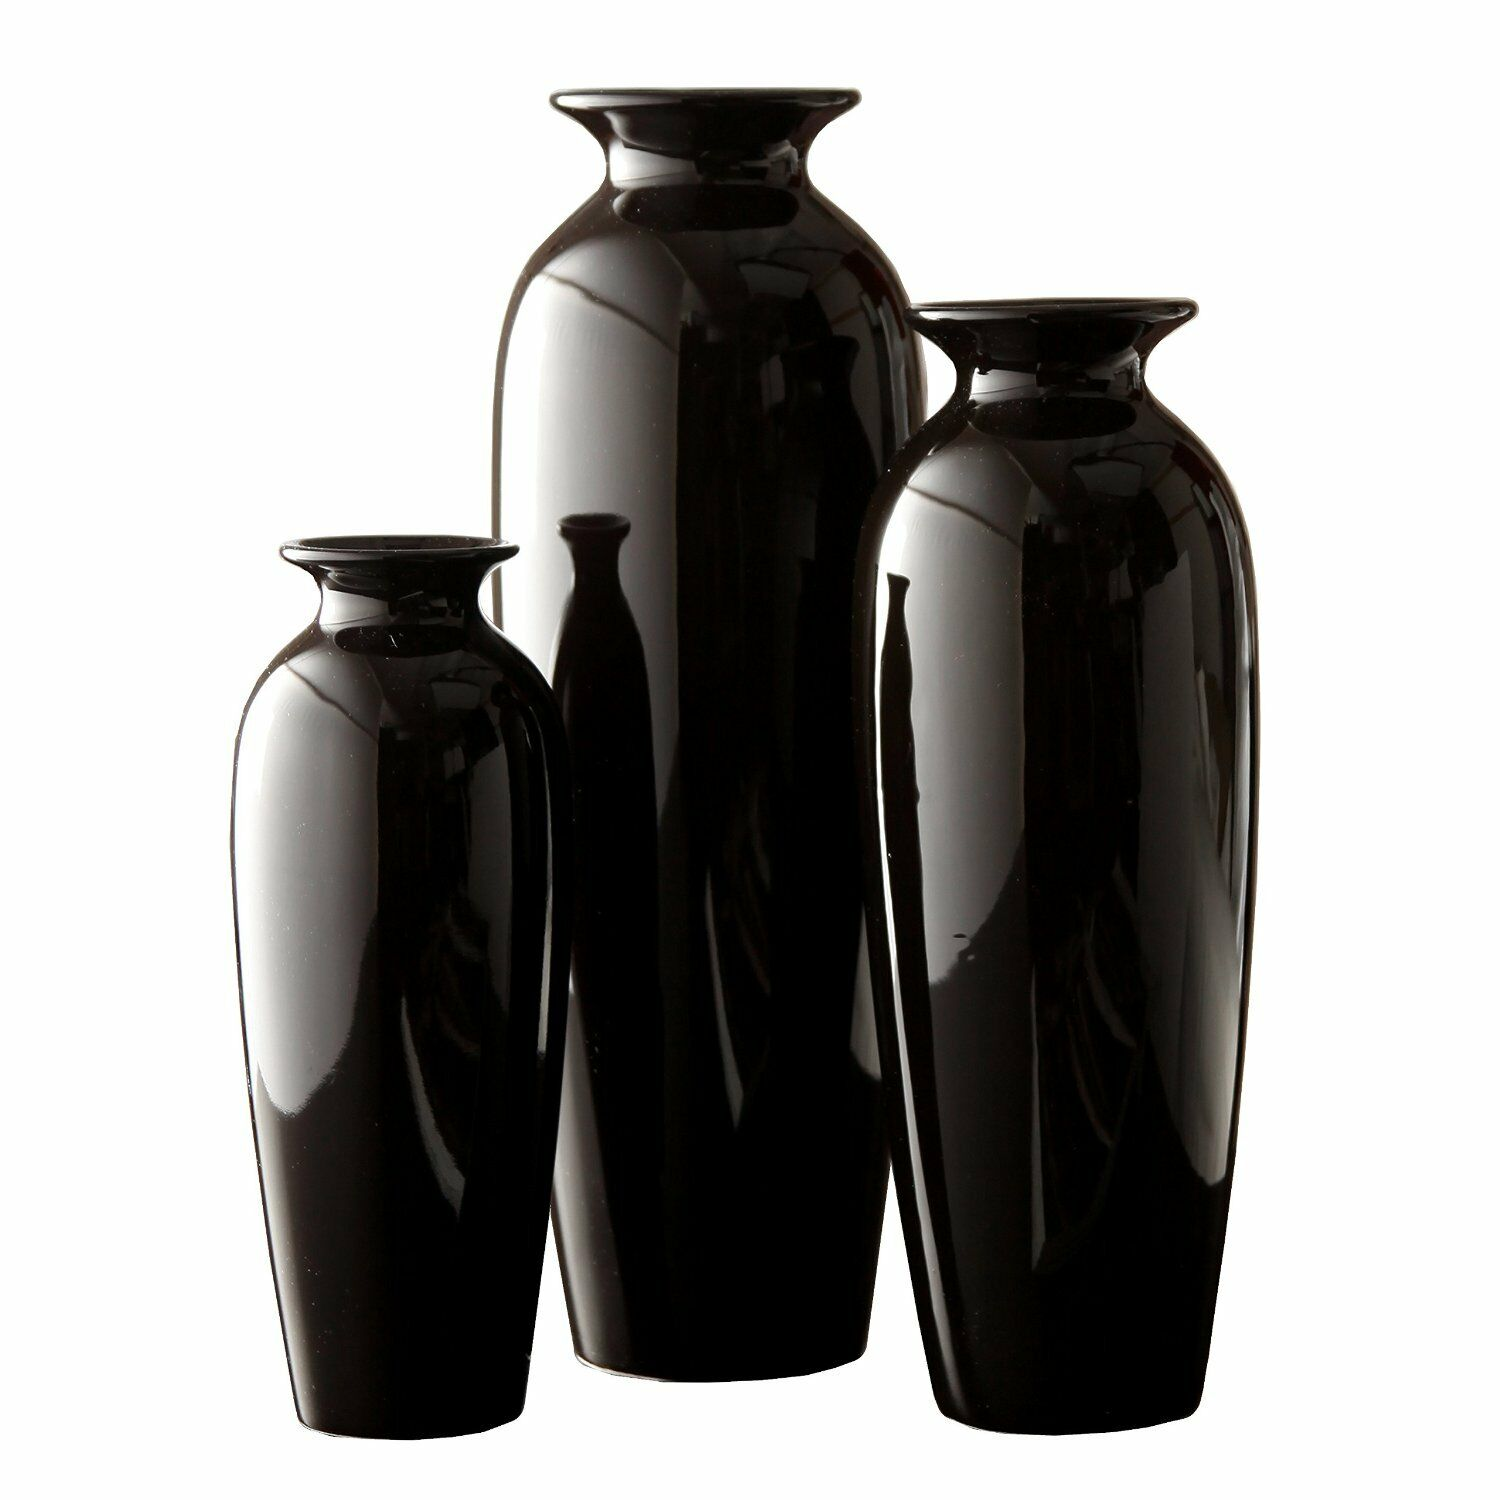 Floor vases decorative tall set modern vase and gift big for Room decor vases